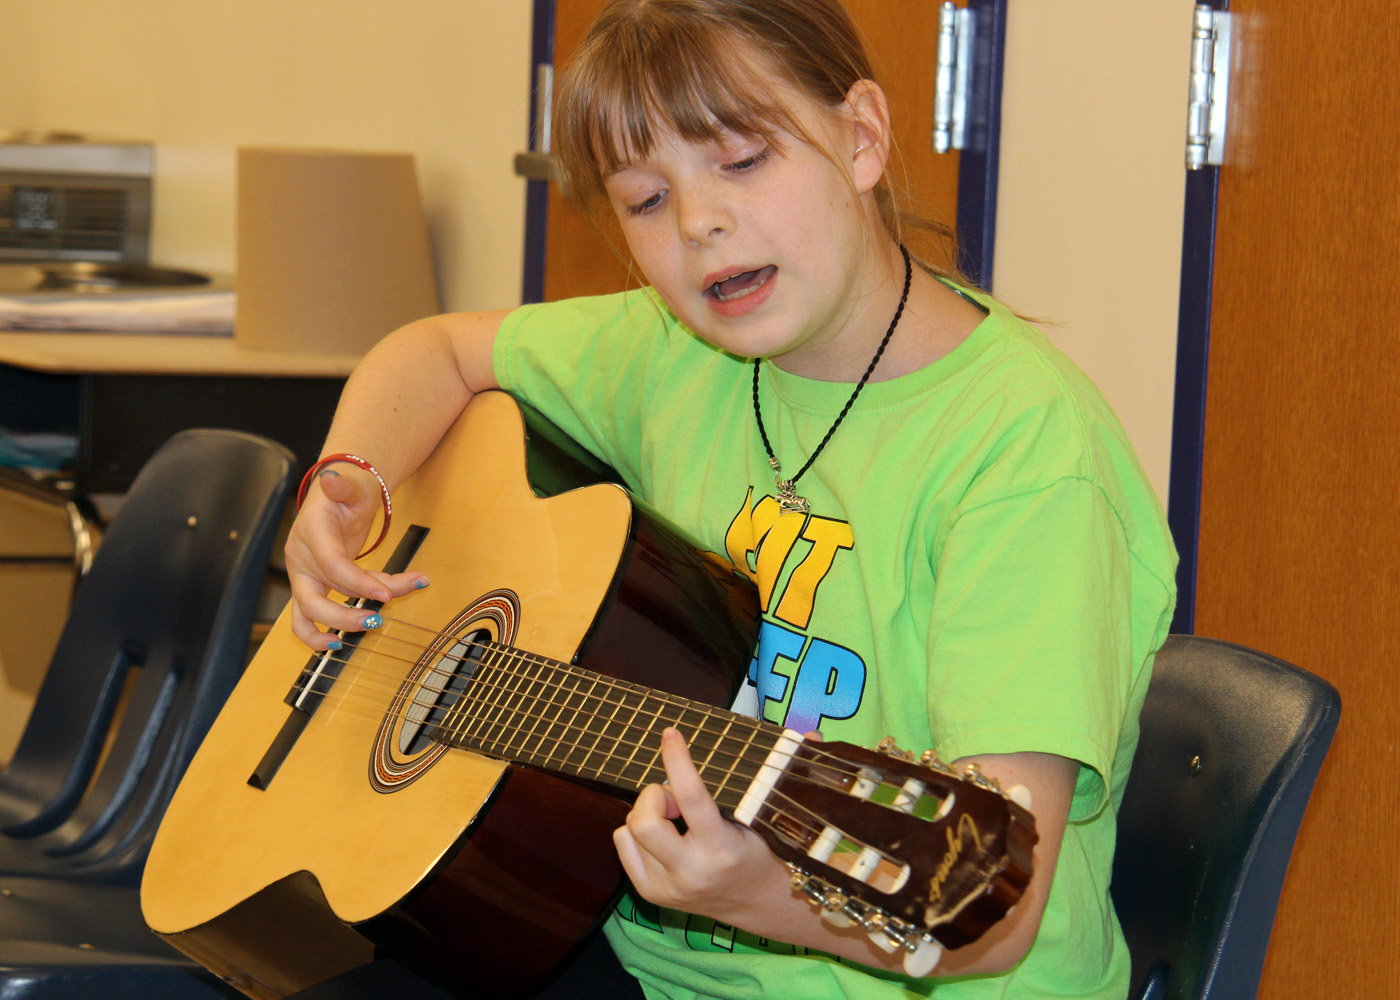 Juliana Charbonneau from Jen Robert's sixth grade class at Northwood Elementary School shows off her guitar skills in a coffeehouse style performance. Provided photo